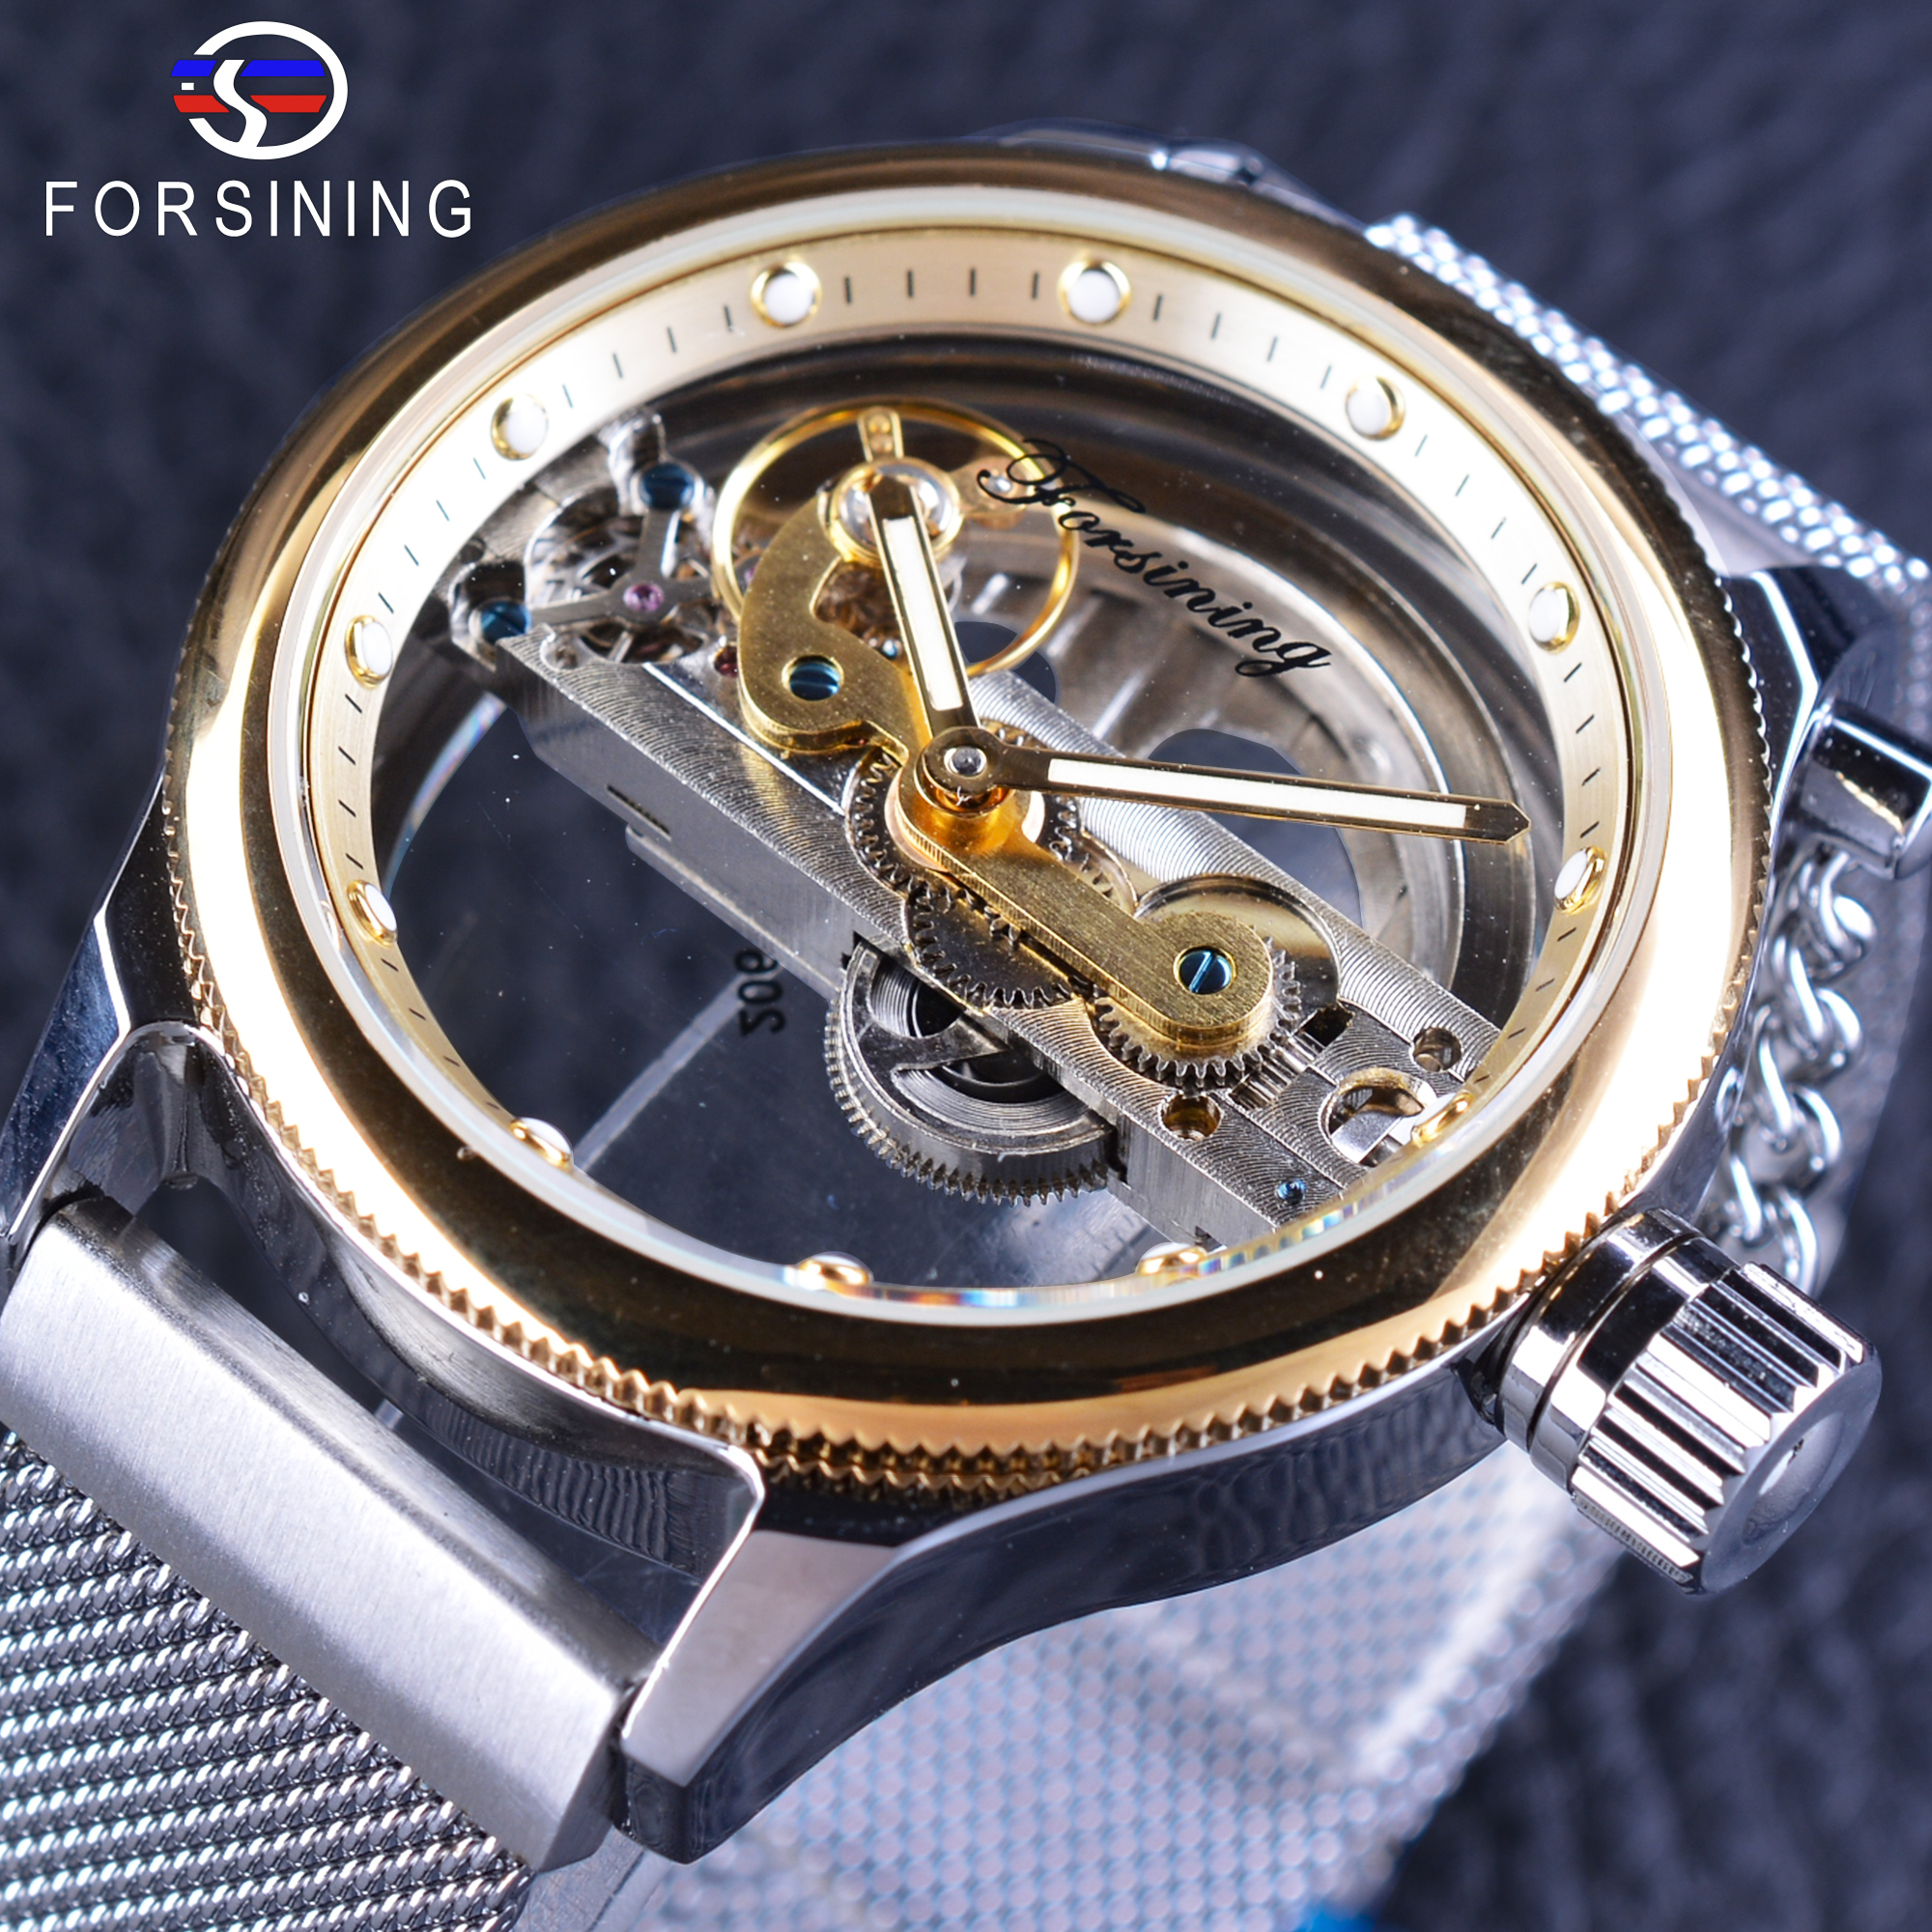 Forsining 2017 Men's Automatic Watches Top Brand Luxury Transparent Case Skeleton Dial Golden Bezel Silver Mesh Band Wristwatch forsining 3d skeleton twisting design golden movement inside transparent case mens watches top brand luxury automatic watches